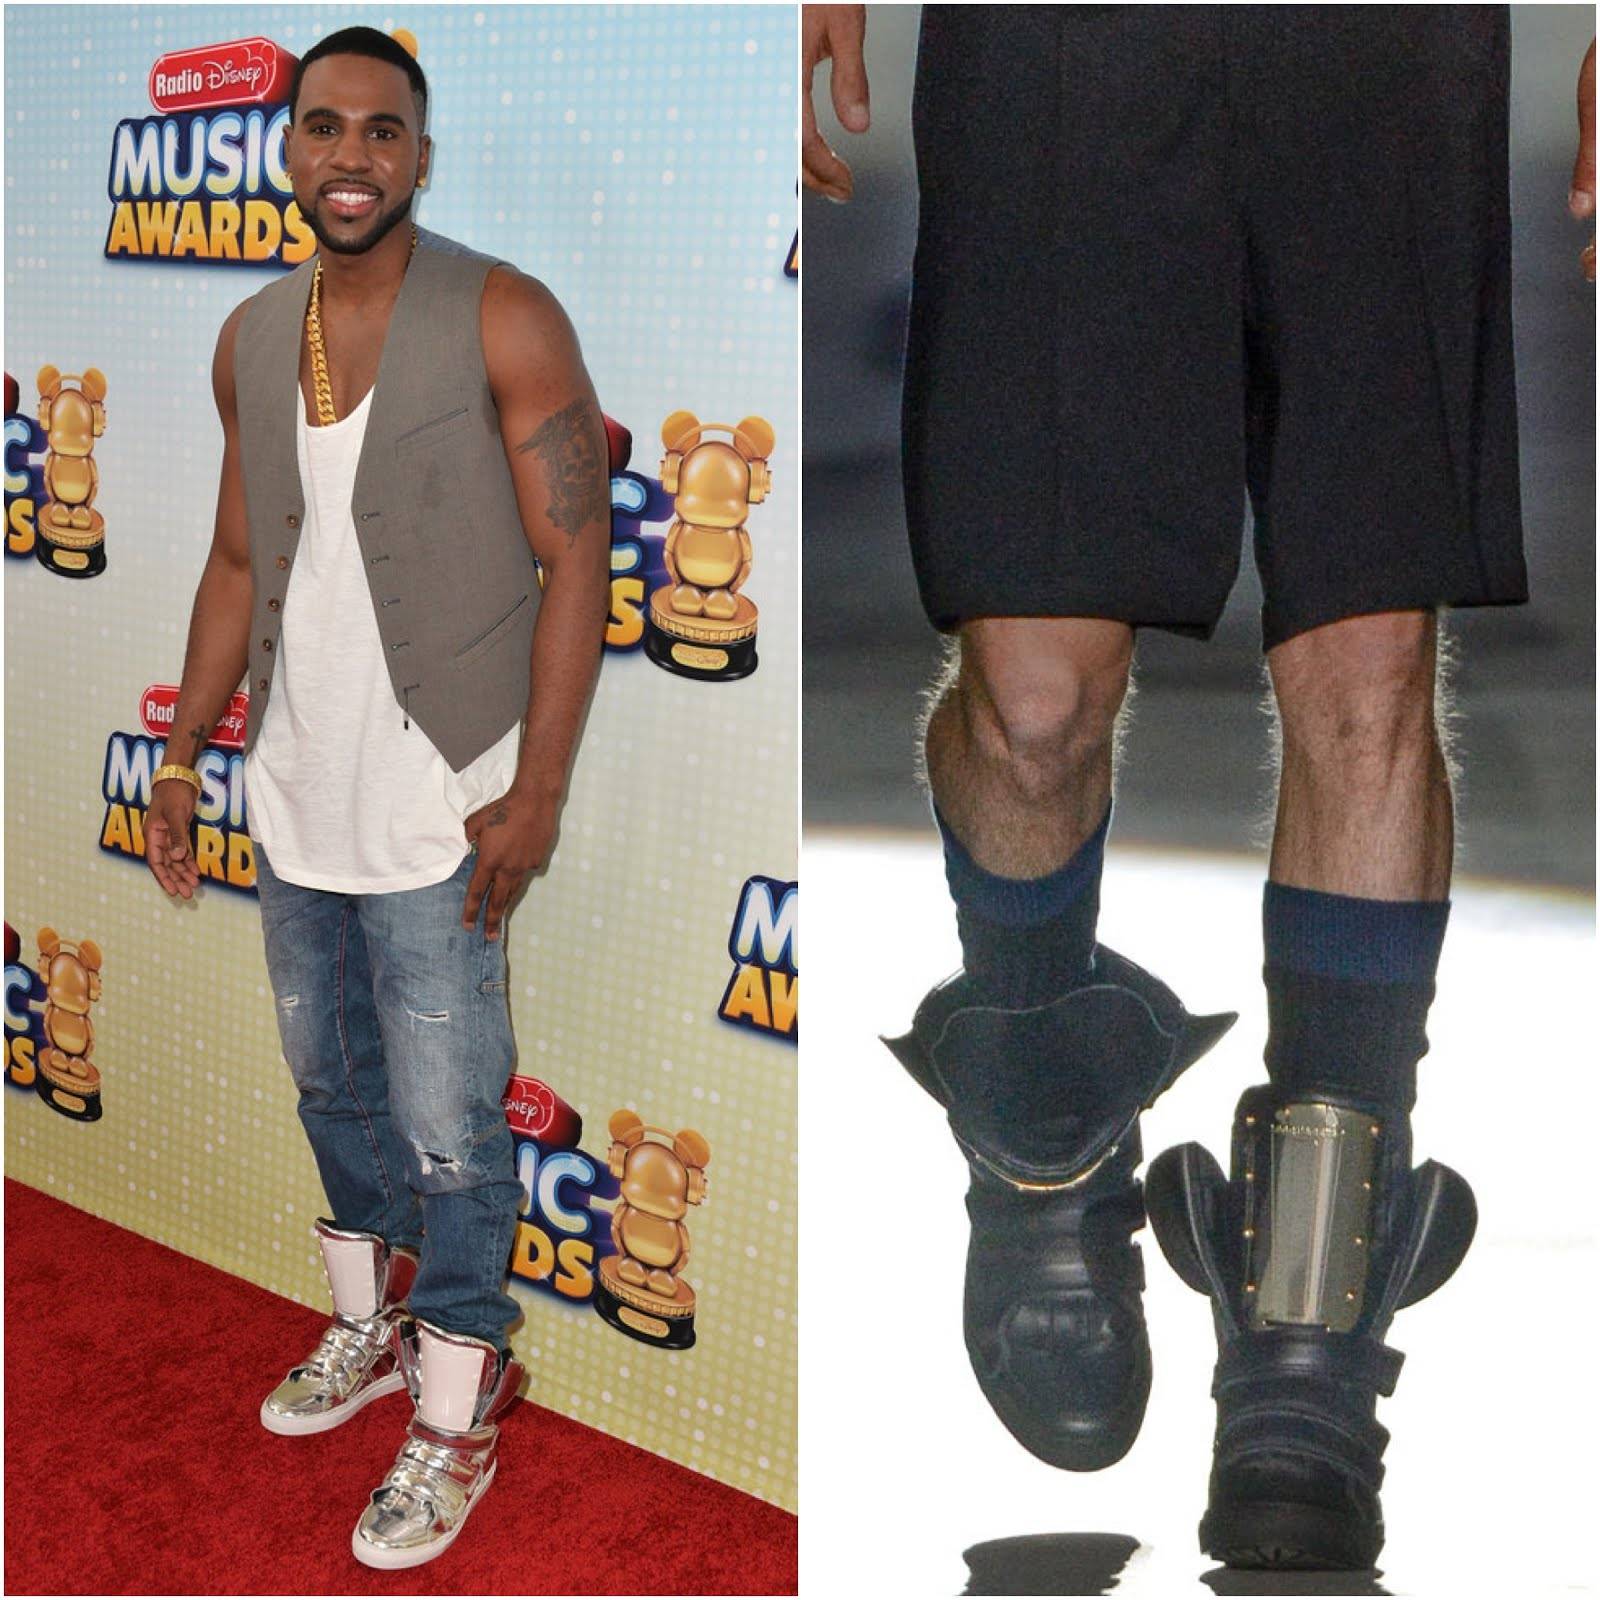 00O00 Menswear Blog: Jason Derulo's DSquared2 mirrored leather metal insert sneakers - 2013 Radio Disney Music Awards April 2013